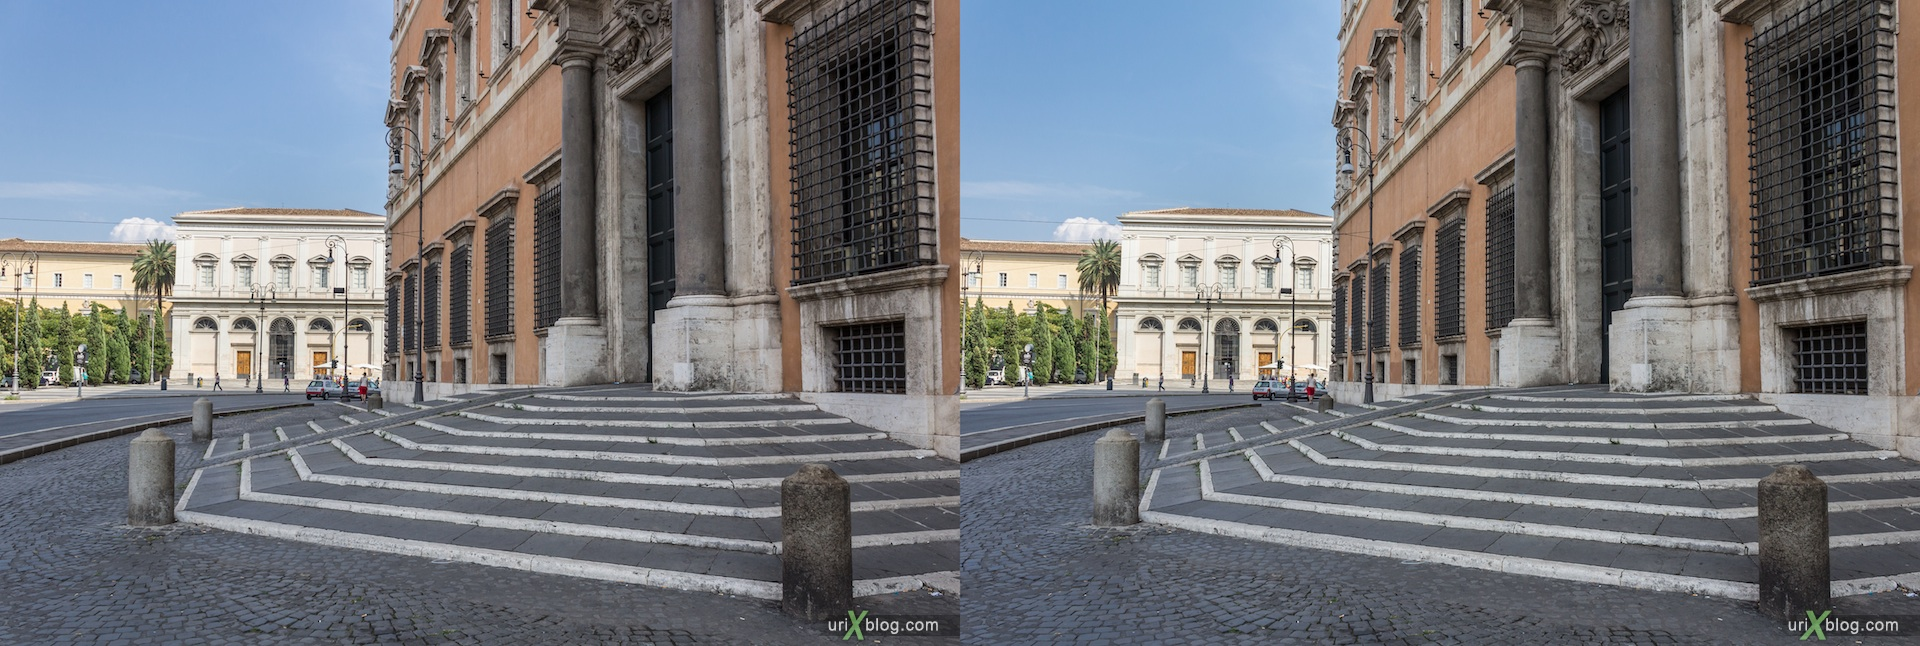 2012, Lateran Palace, church, basilica of San Giovanni in Laterano, Rome, Italy, cathedral, monastery, Christianity, Catholicism, 3D, stereo pair, cross-eyed, crossview, cross view stereo pair